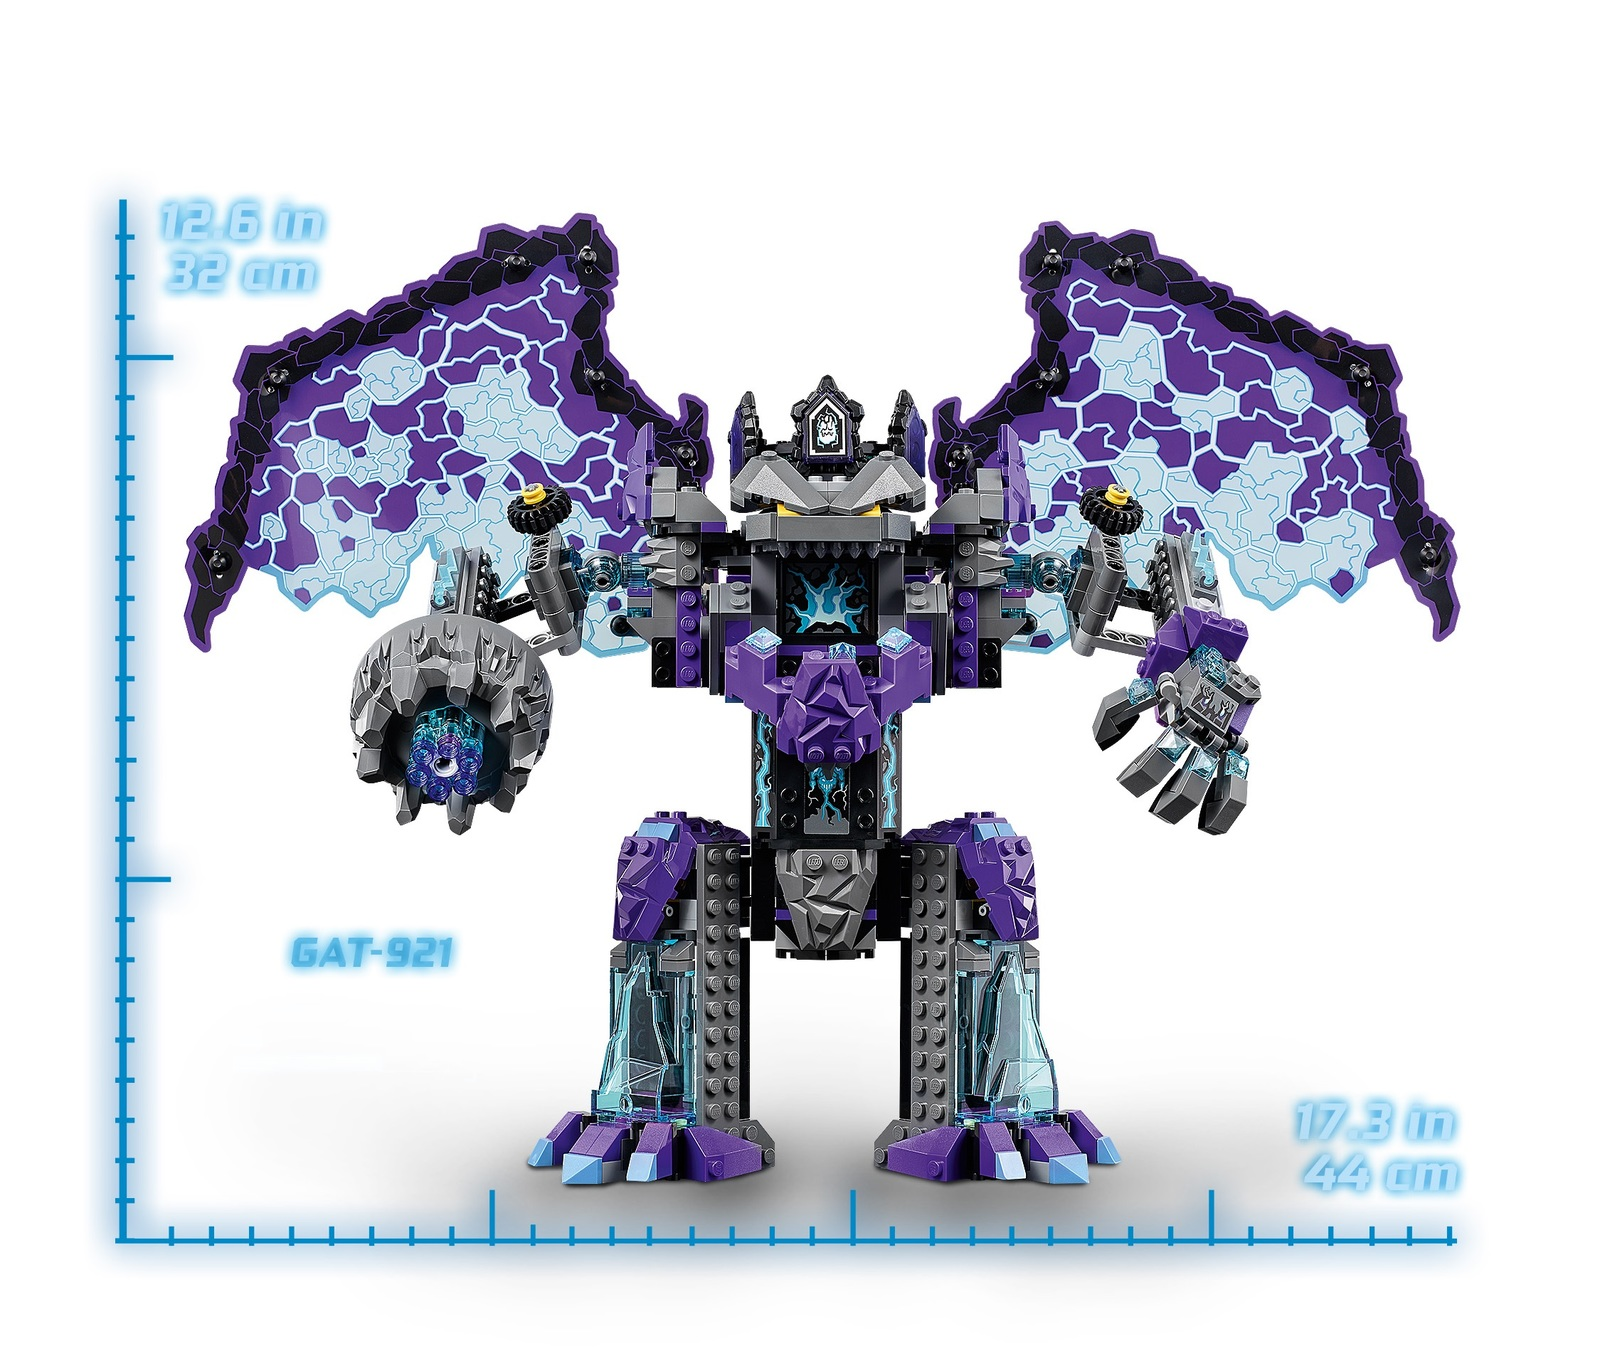 LEGO Nexo Knights: The Stone Colossus of Ultimate Destruction (70356) image